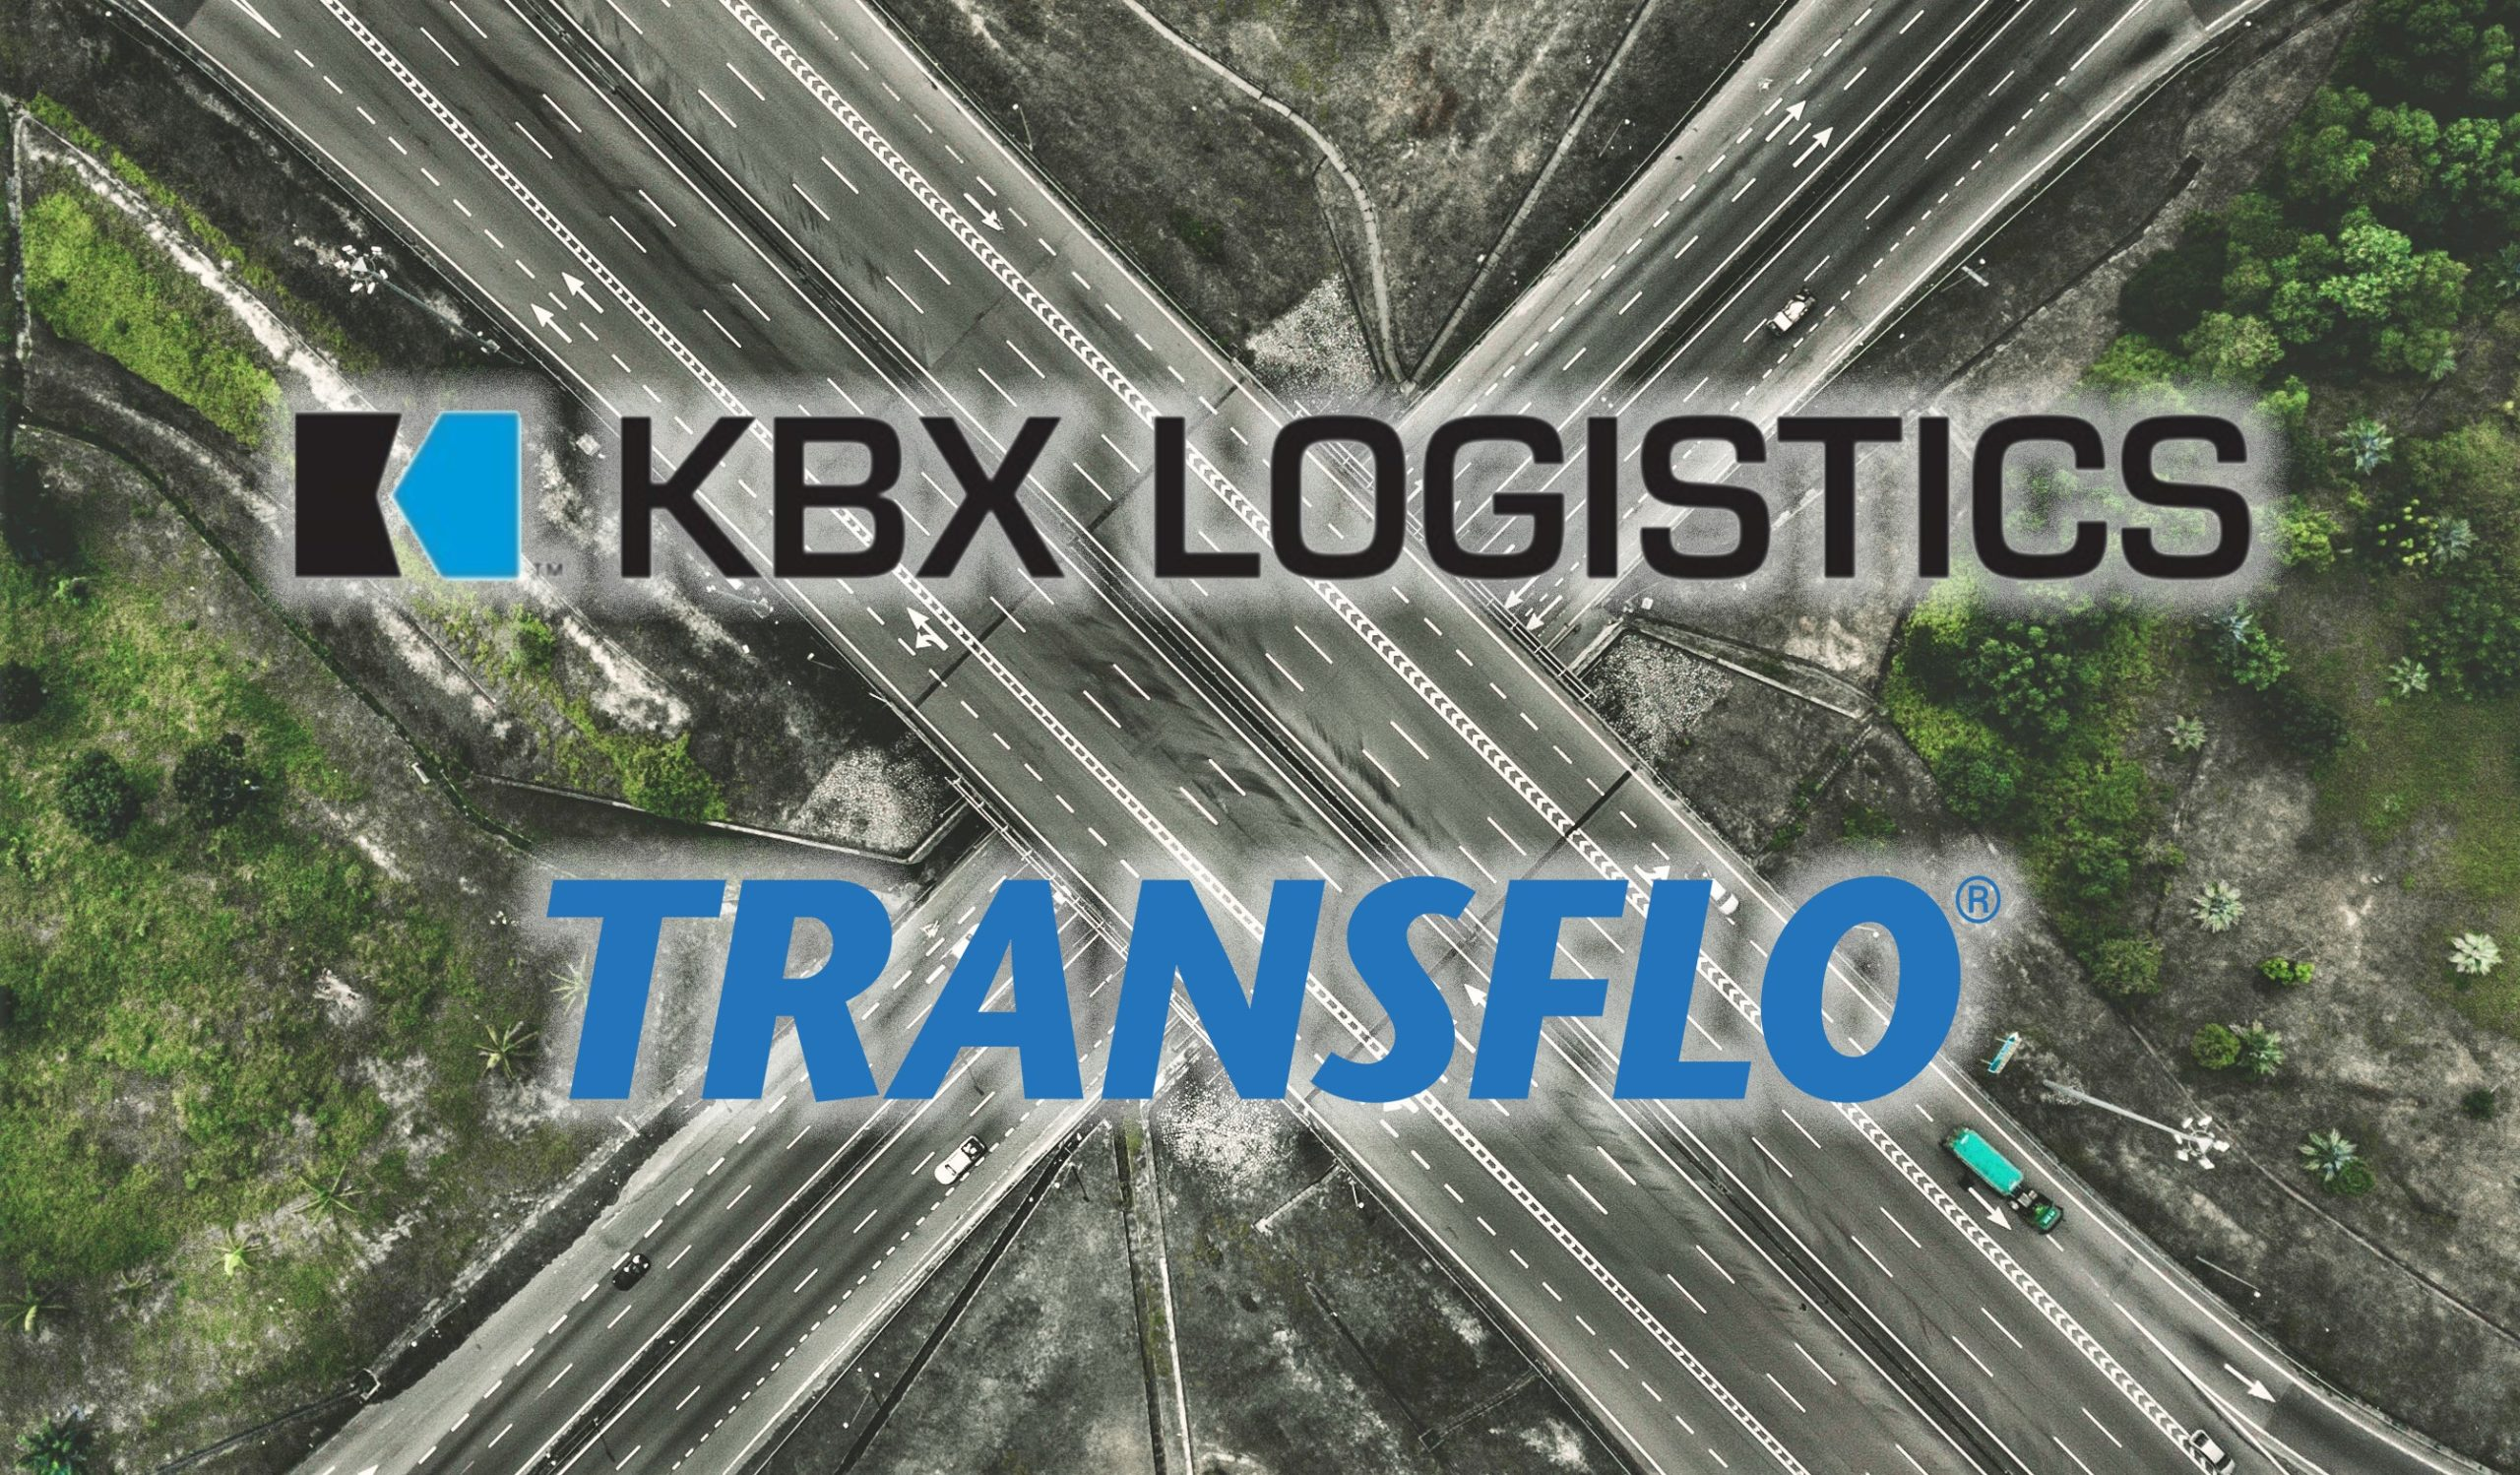 KBX Logistics Announces Partnership with Transflo to Offer Automated (Touch-Free) eBOL & ePOD Solutions